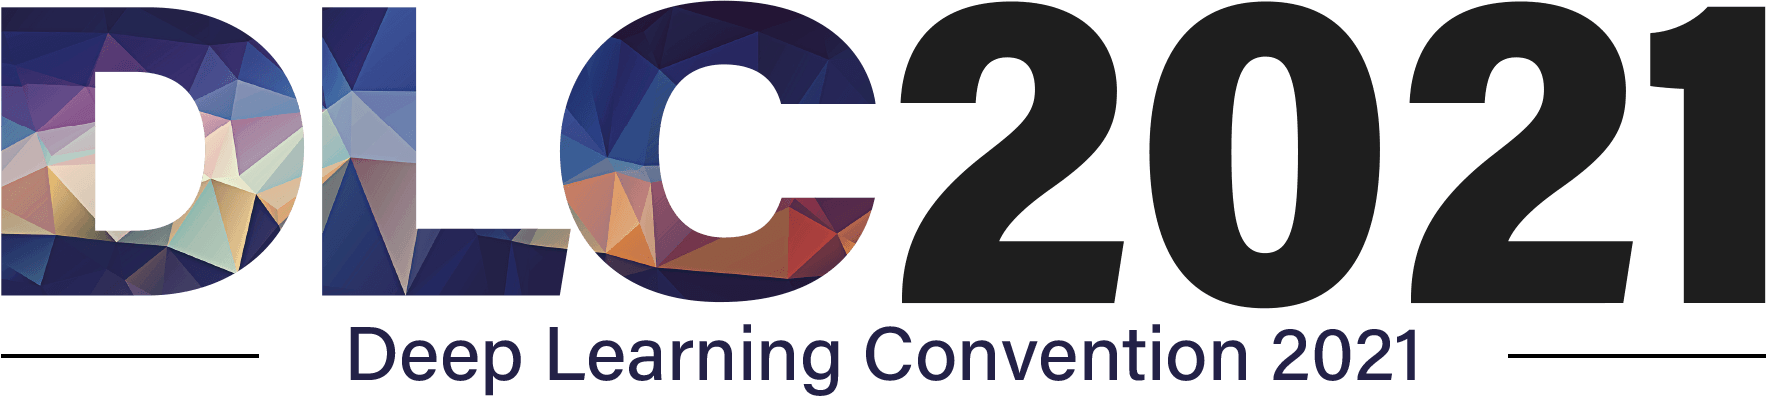 Deep Learning Convention 2021